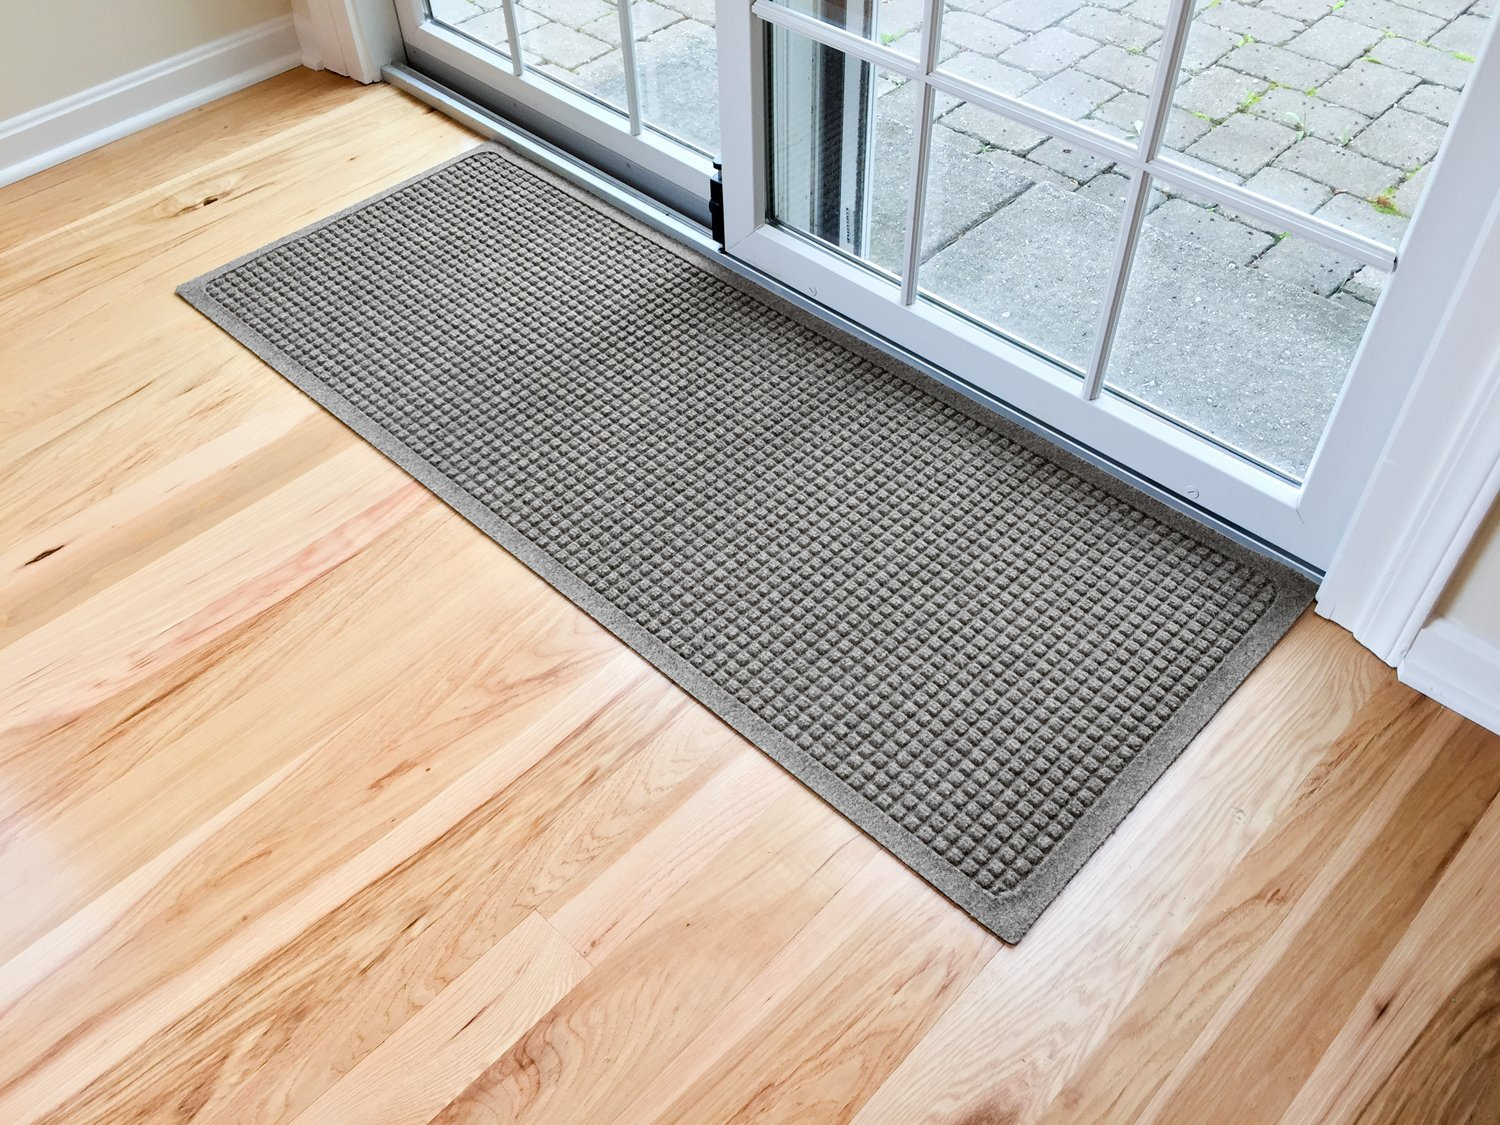 Hudson Exchange 4210 Waterhog Fashion Floor Mat Runner, 60' L x 22' W, 3/8' Thick Medium Brown